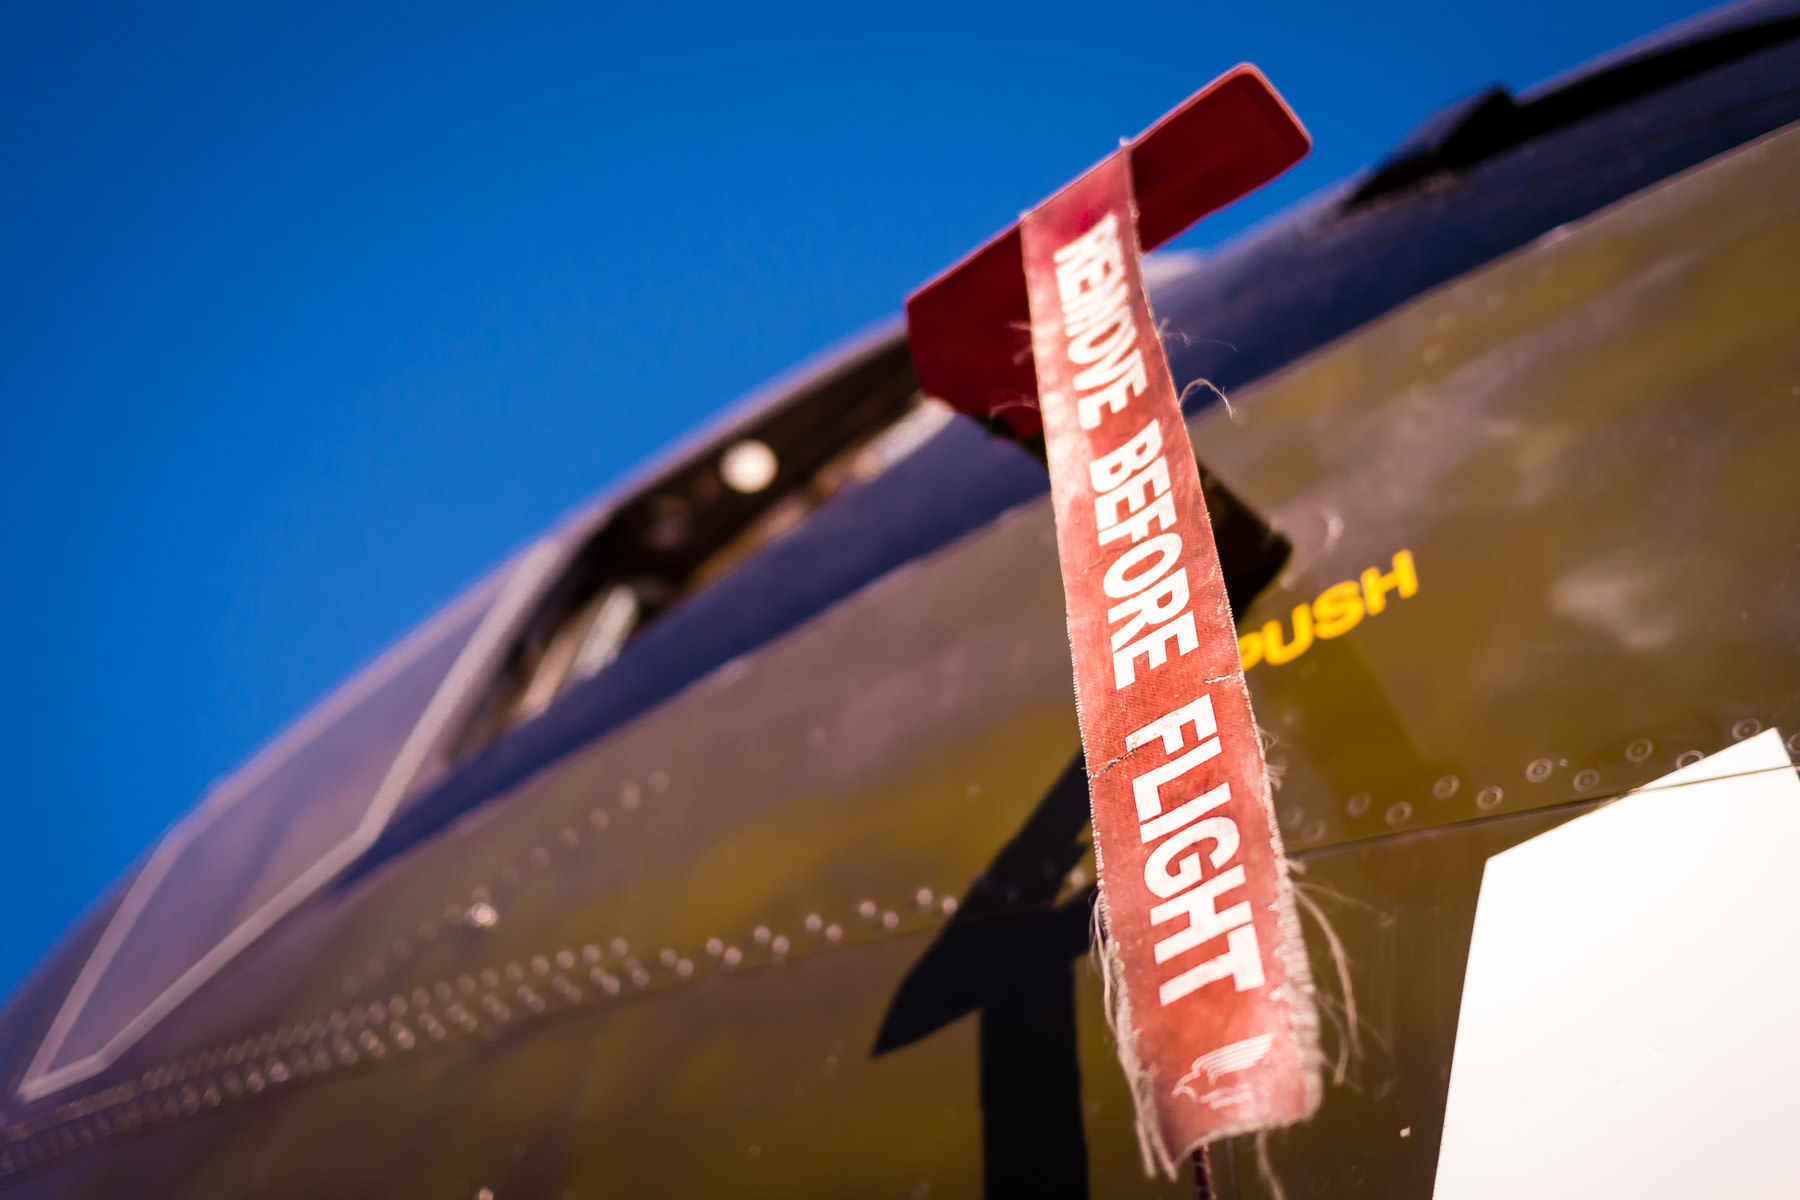 A warning flag on a pitot tube of a De Havilland CV-2B Caribou in the collection of Addison, Texas' Cavanaugh Flight Museum.